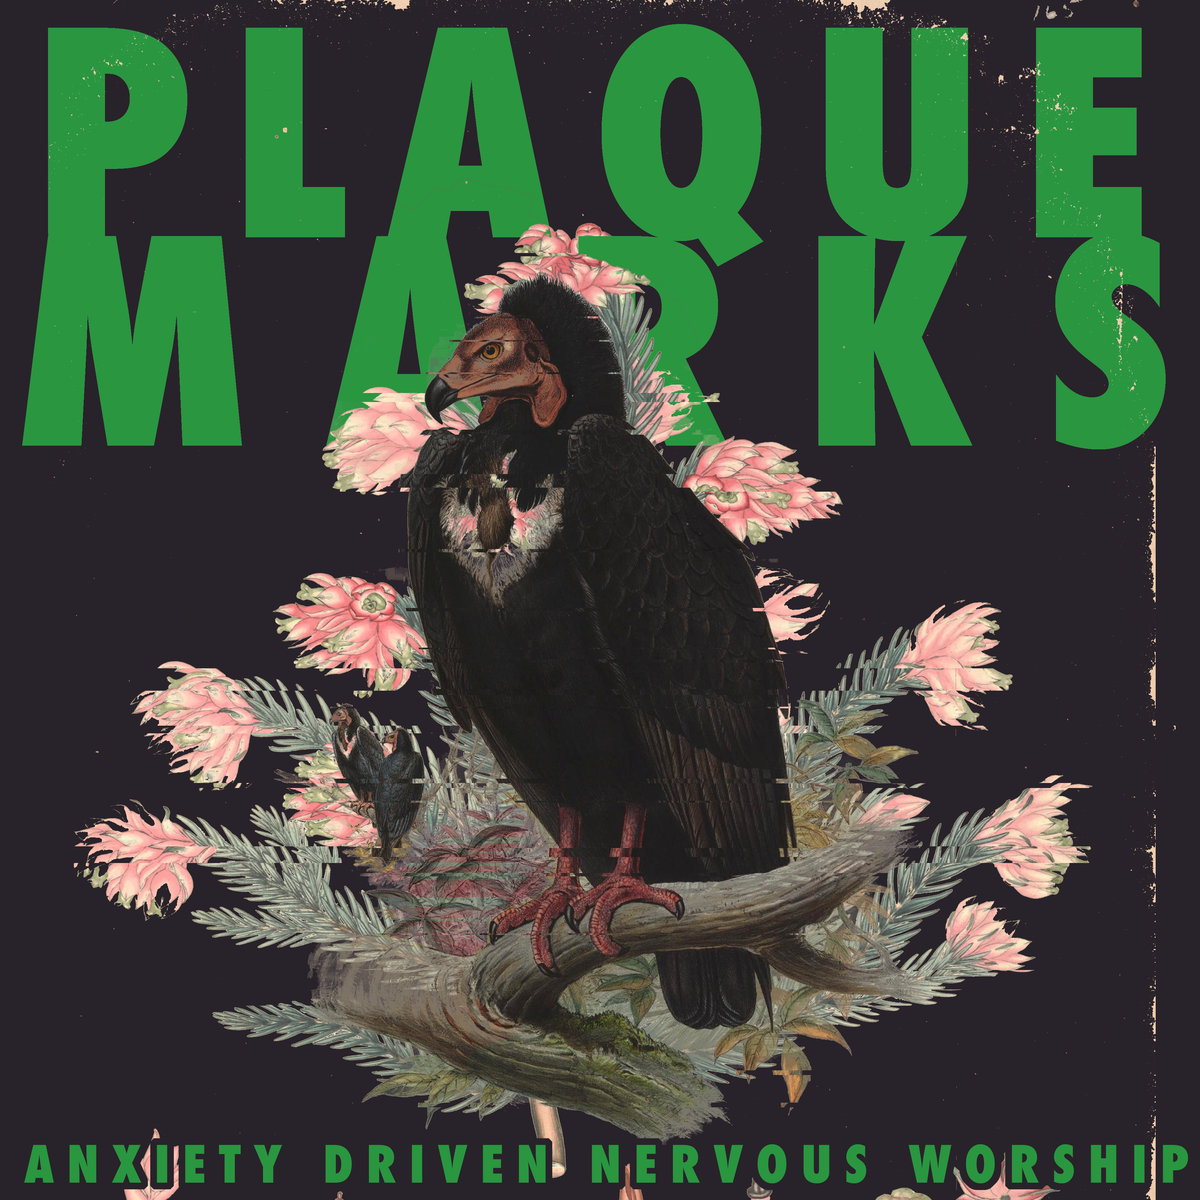 PLAQUE MARKS Anxiety Driven Nervous Worship – Vinyl LP (transparent green with gold splatter)